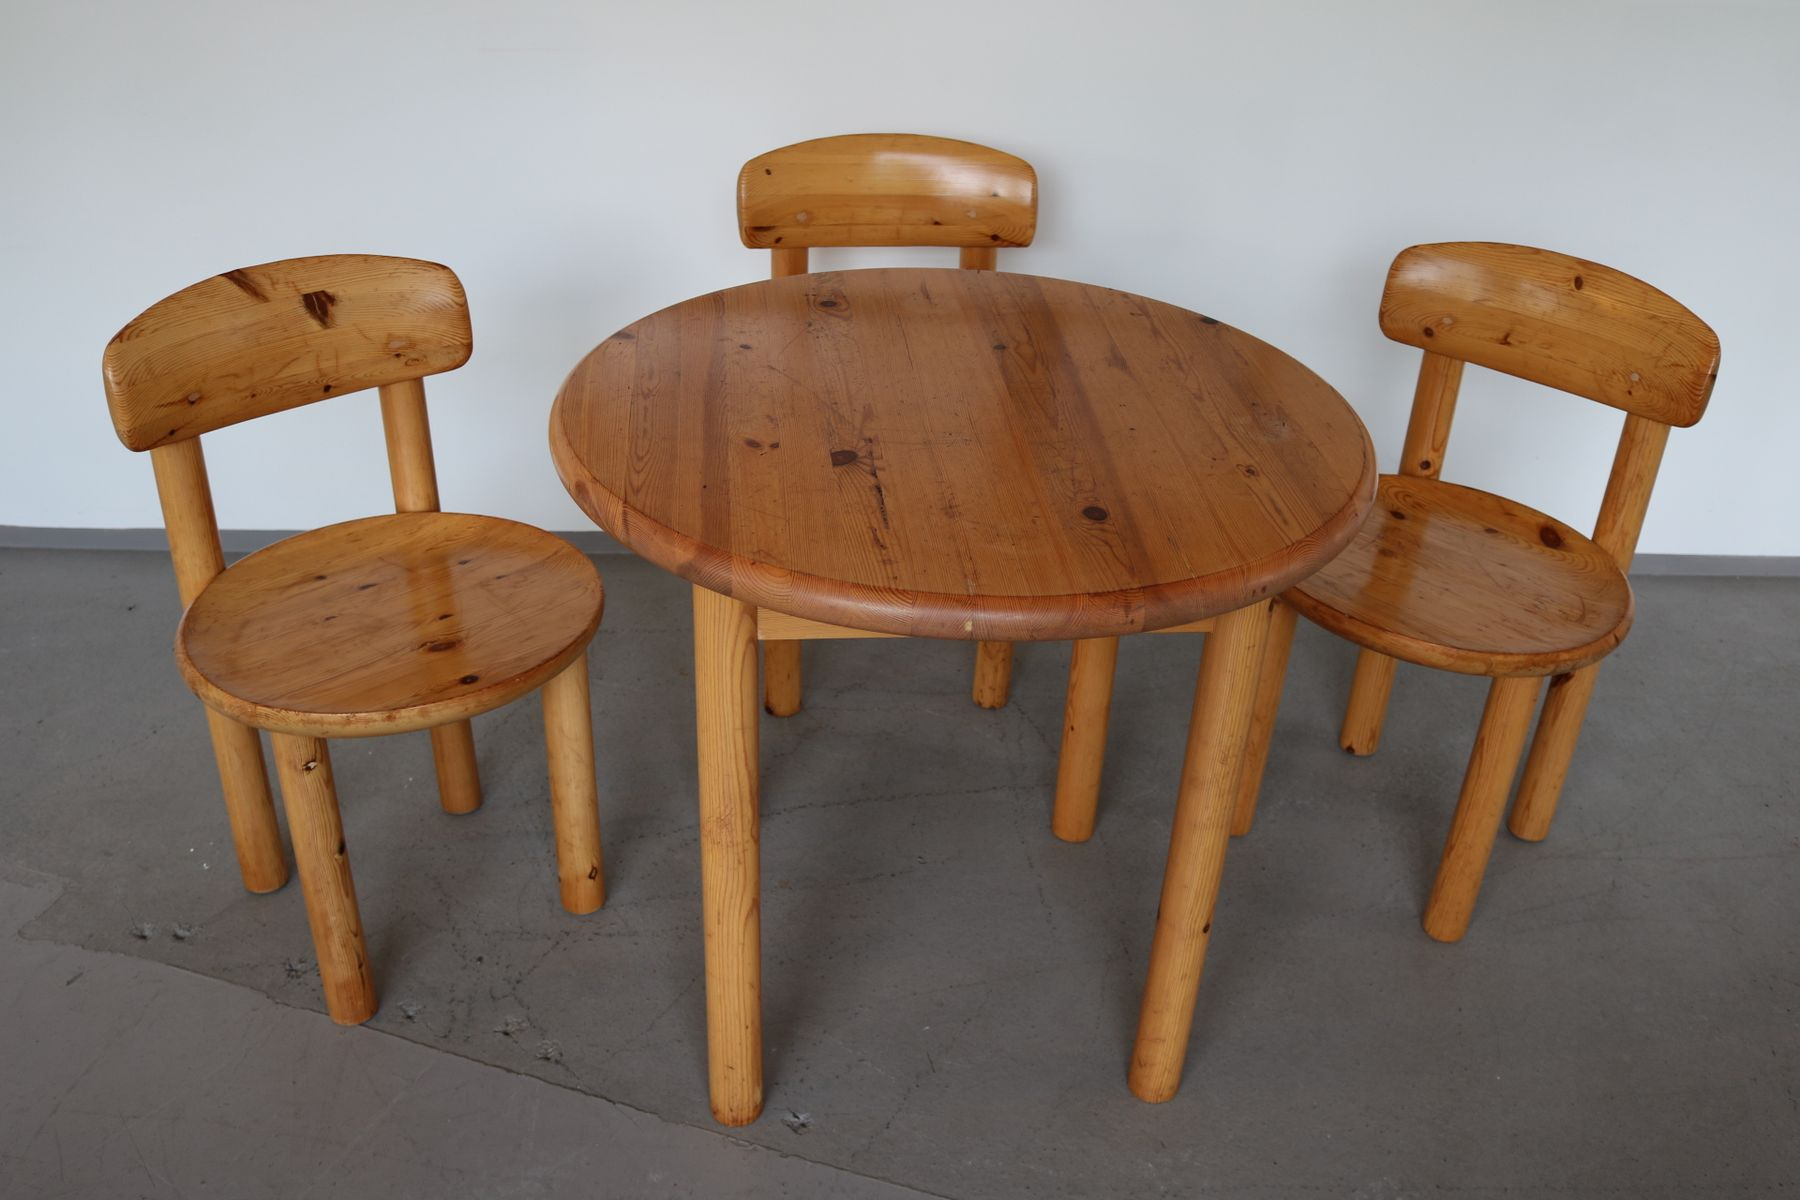 Table By Rainer Daumiller For Hirtshals Sawmill, 1970s For Sale At Pamono